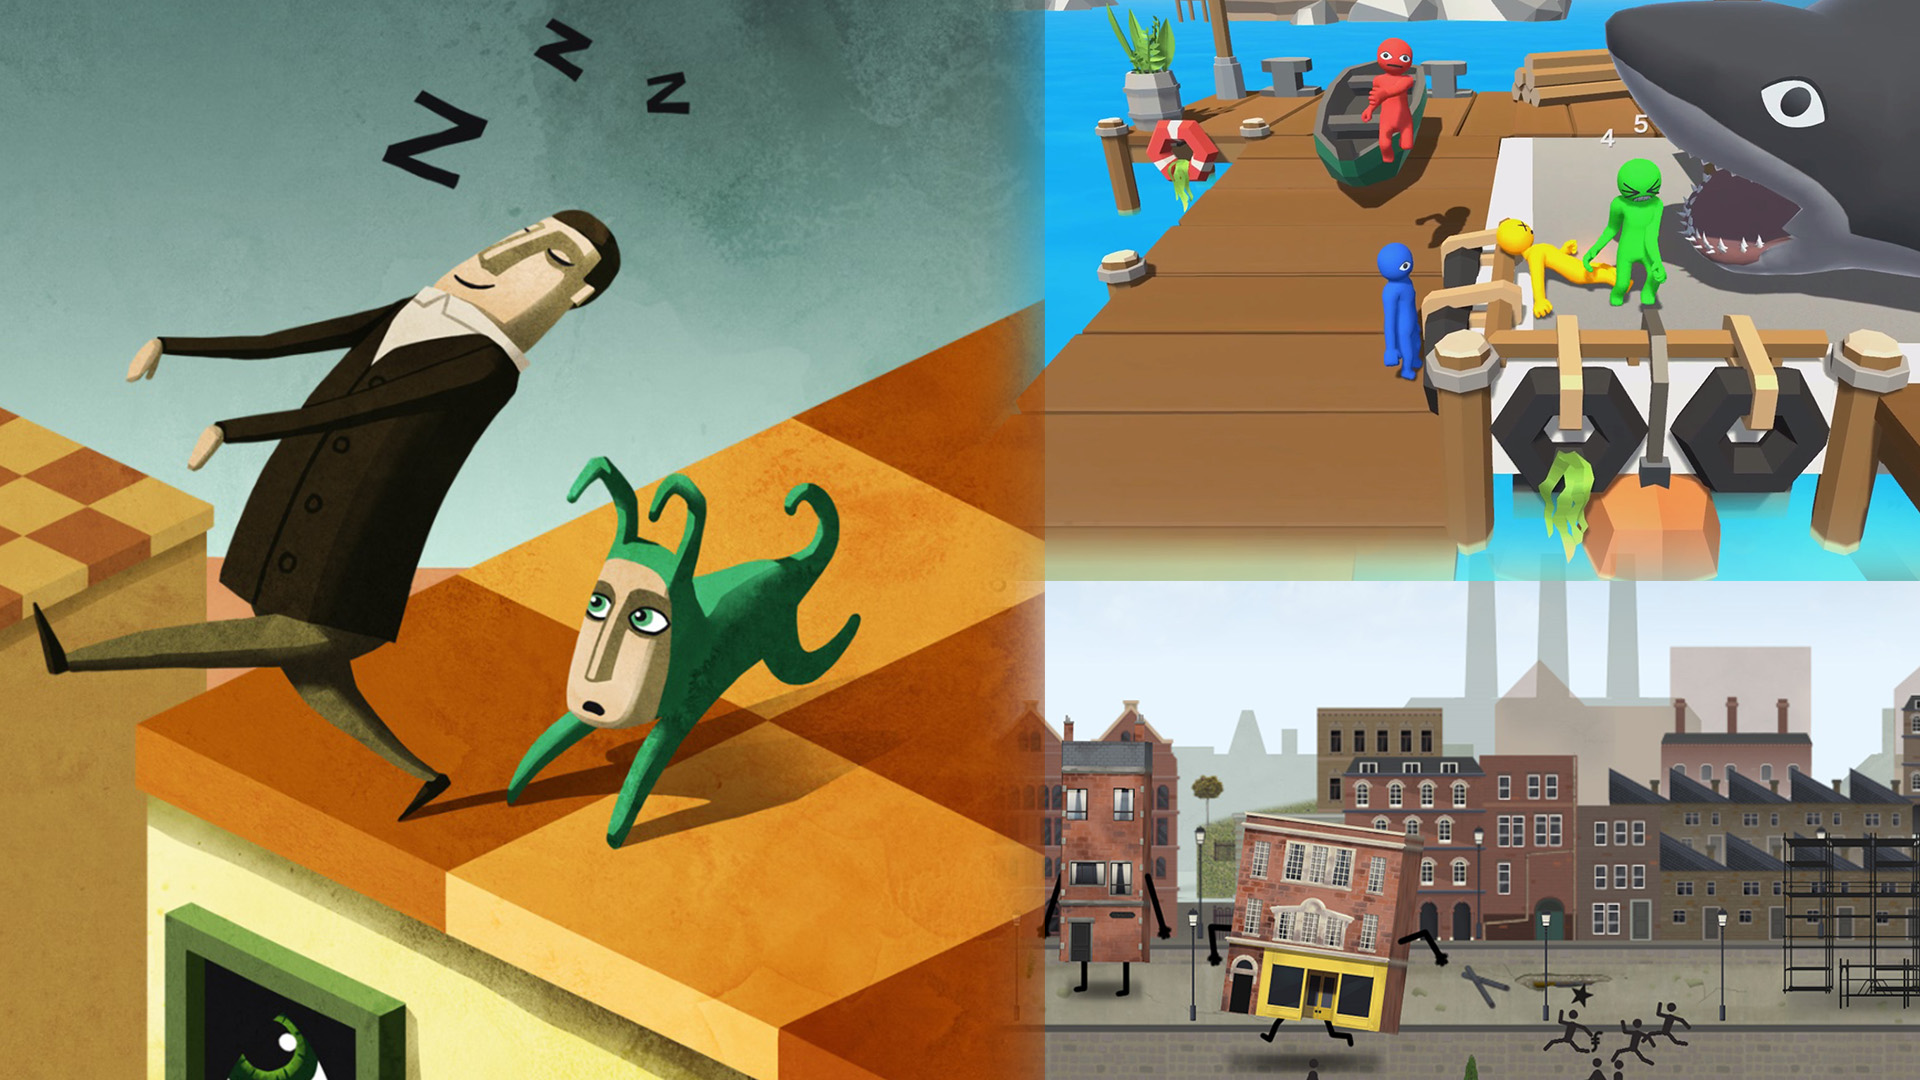 Getting Weird with Wes: Flop your friends to death, eat people for house money, and Escher your uncle to bed screenshot